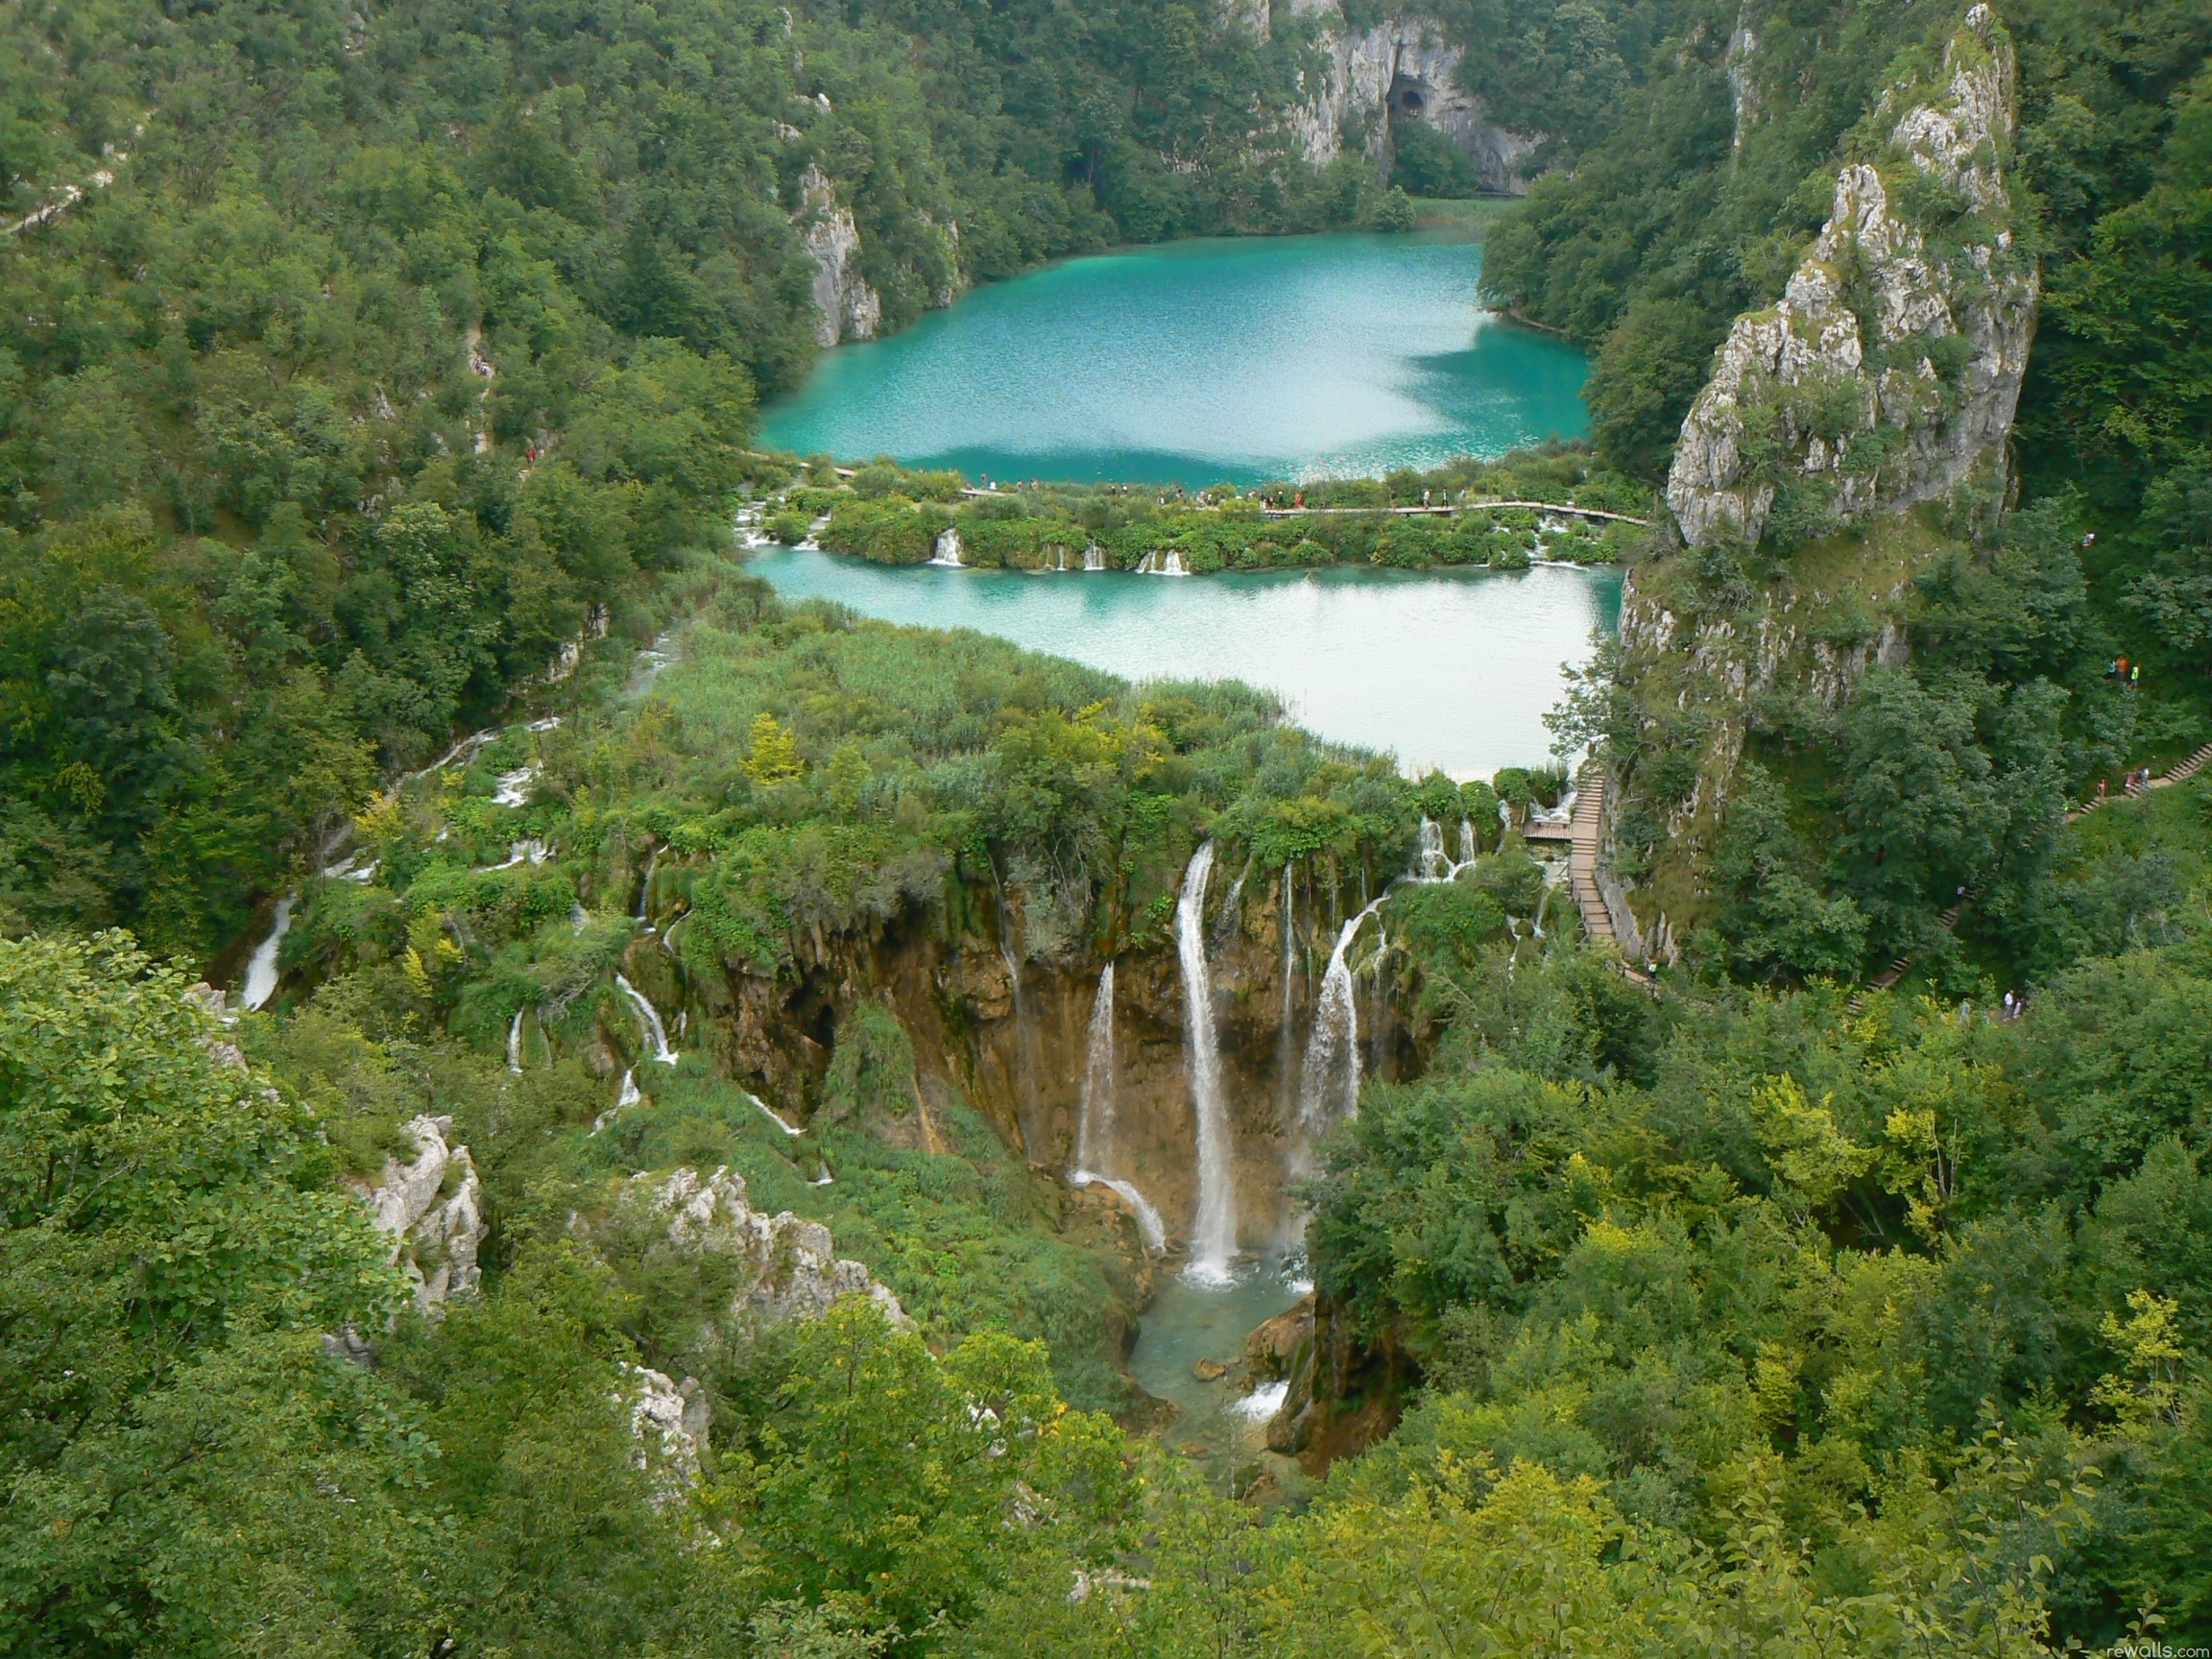 111022 download wallpaper Nature, Forest, Height, Thickets, Thicket, Dam, Rocks, Waterfalls screensavers and pictures for free